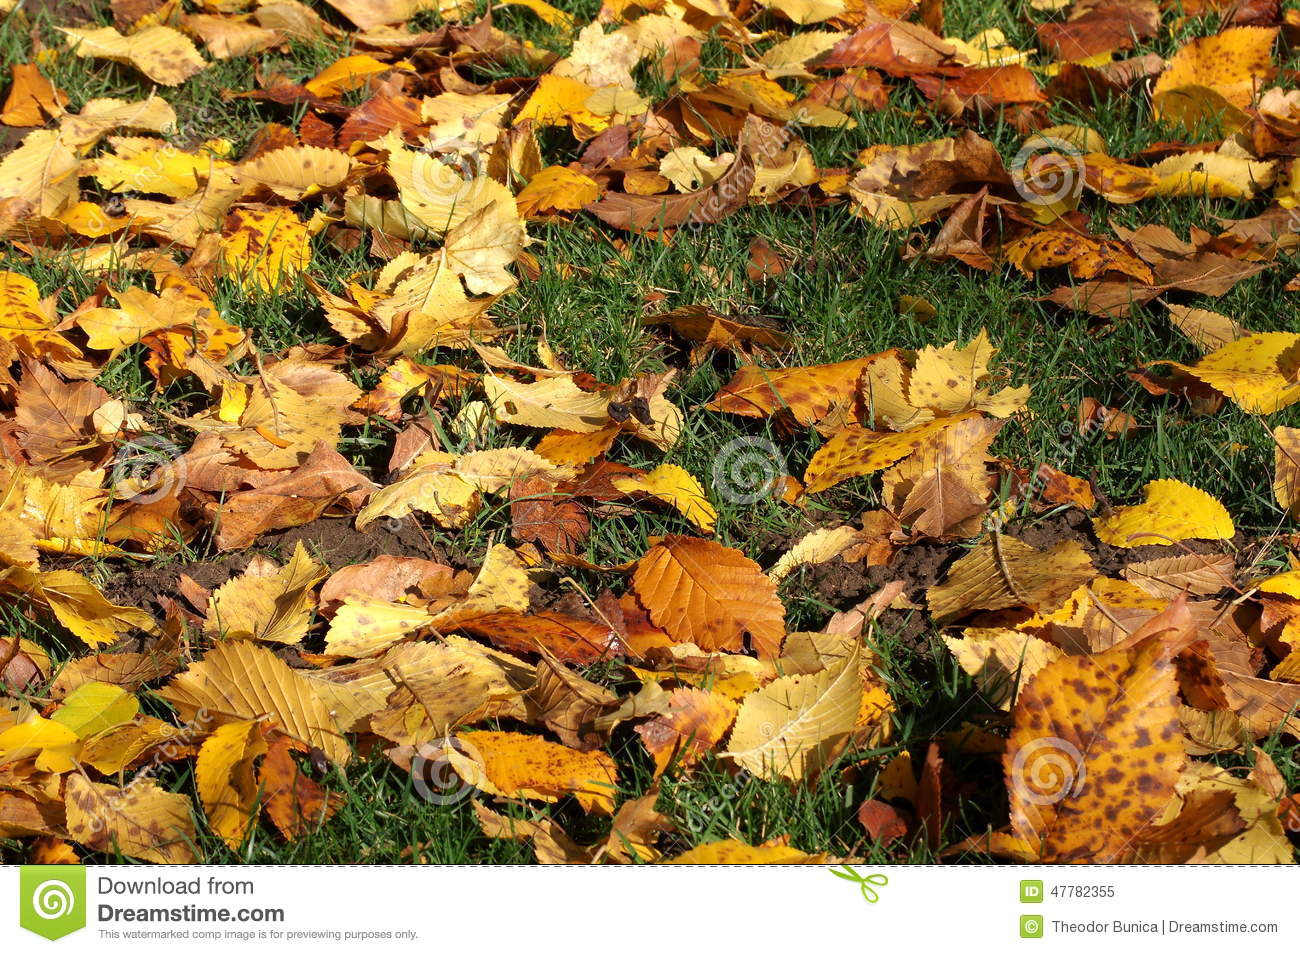 Colors of autumn in a landscape in the park. Collage of colored fallen leaves in the green garss. Autumn background